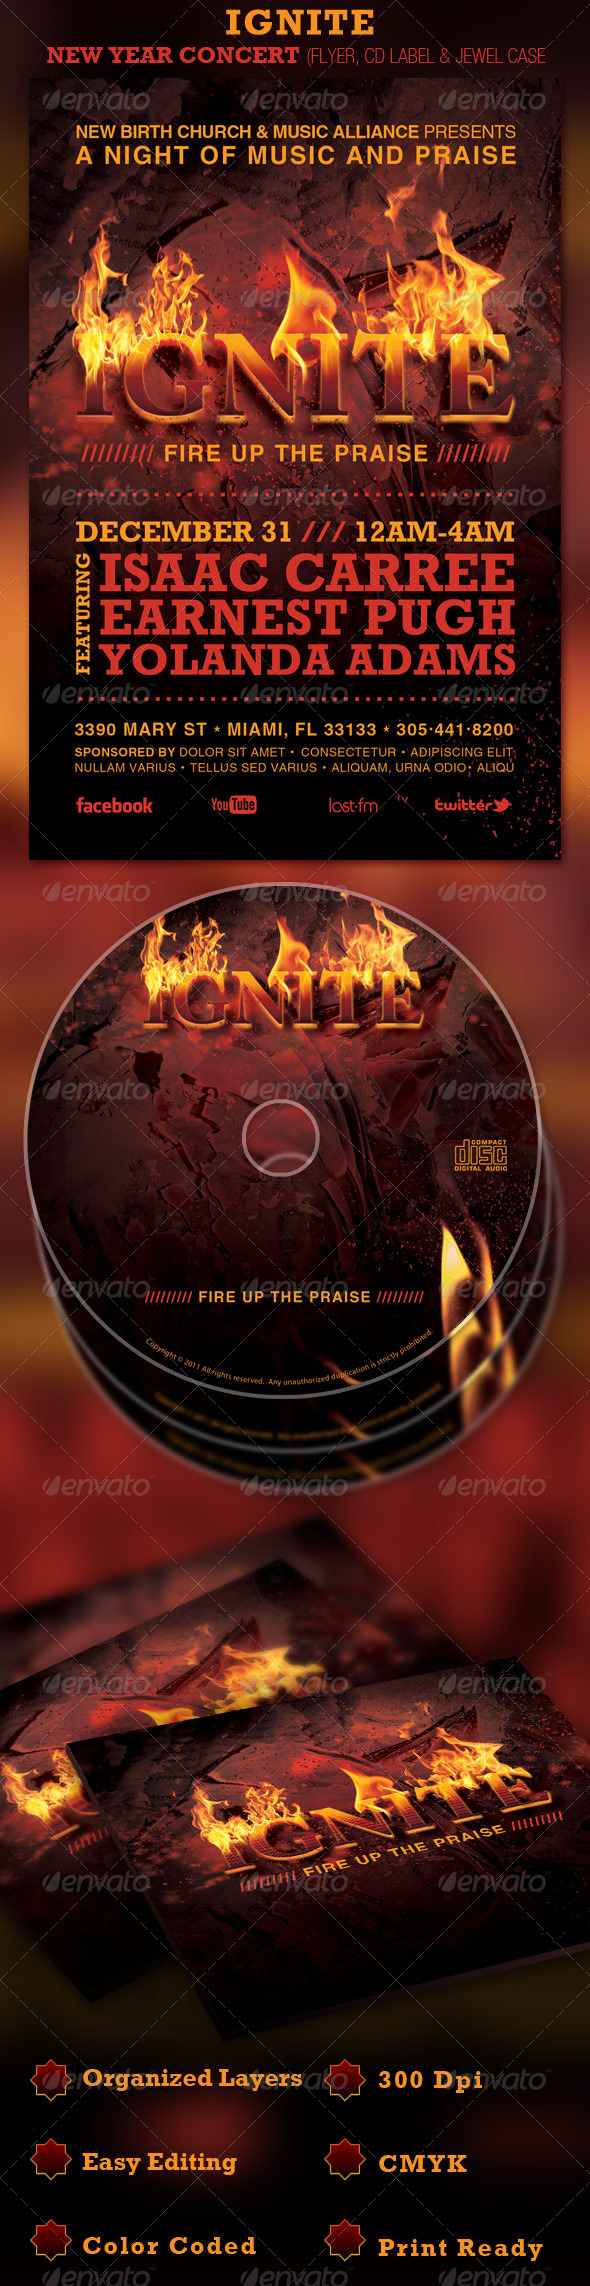 IGNITE New Year Concert Flyer and CD Template - Church Flyers